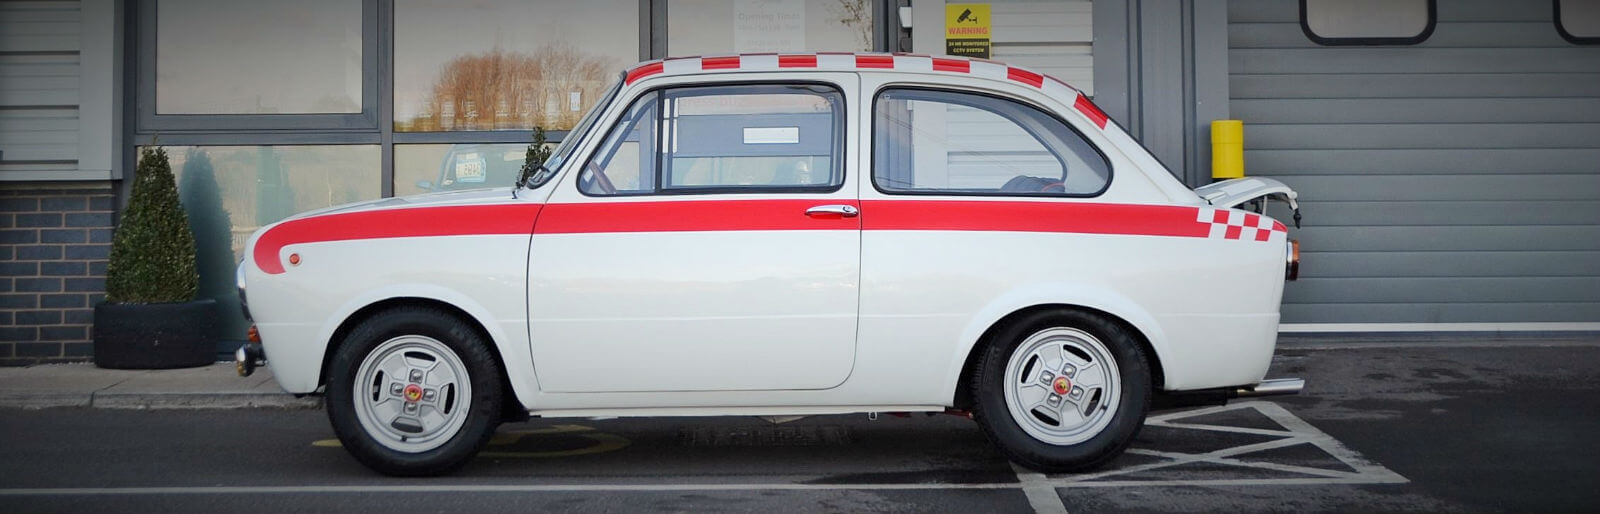 Vaak Take to the Road Classifieds find: 1969 Fiat 850 Abarth JS27